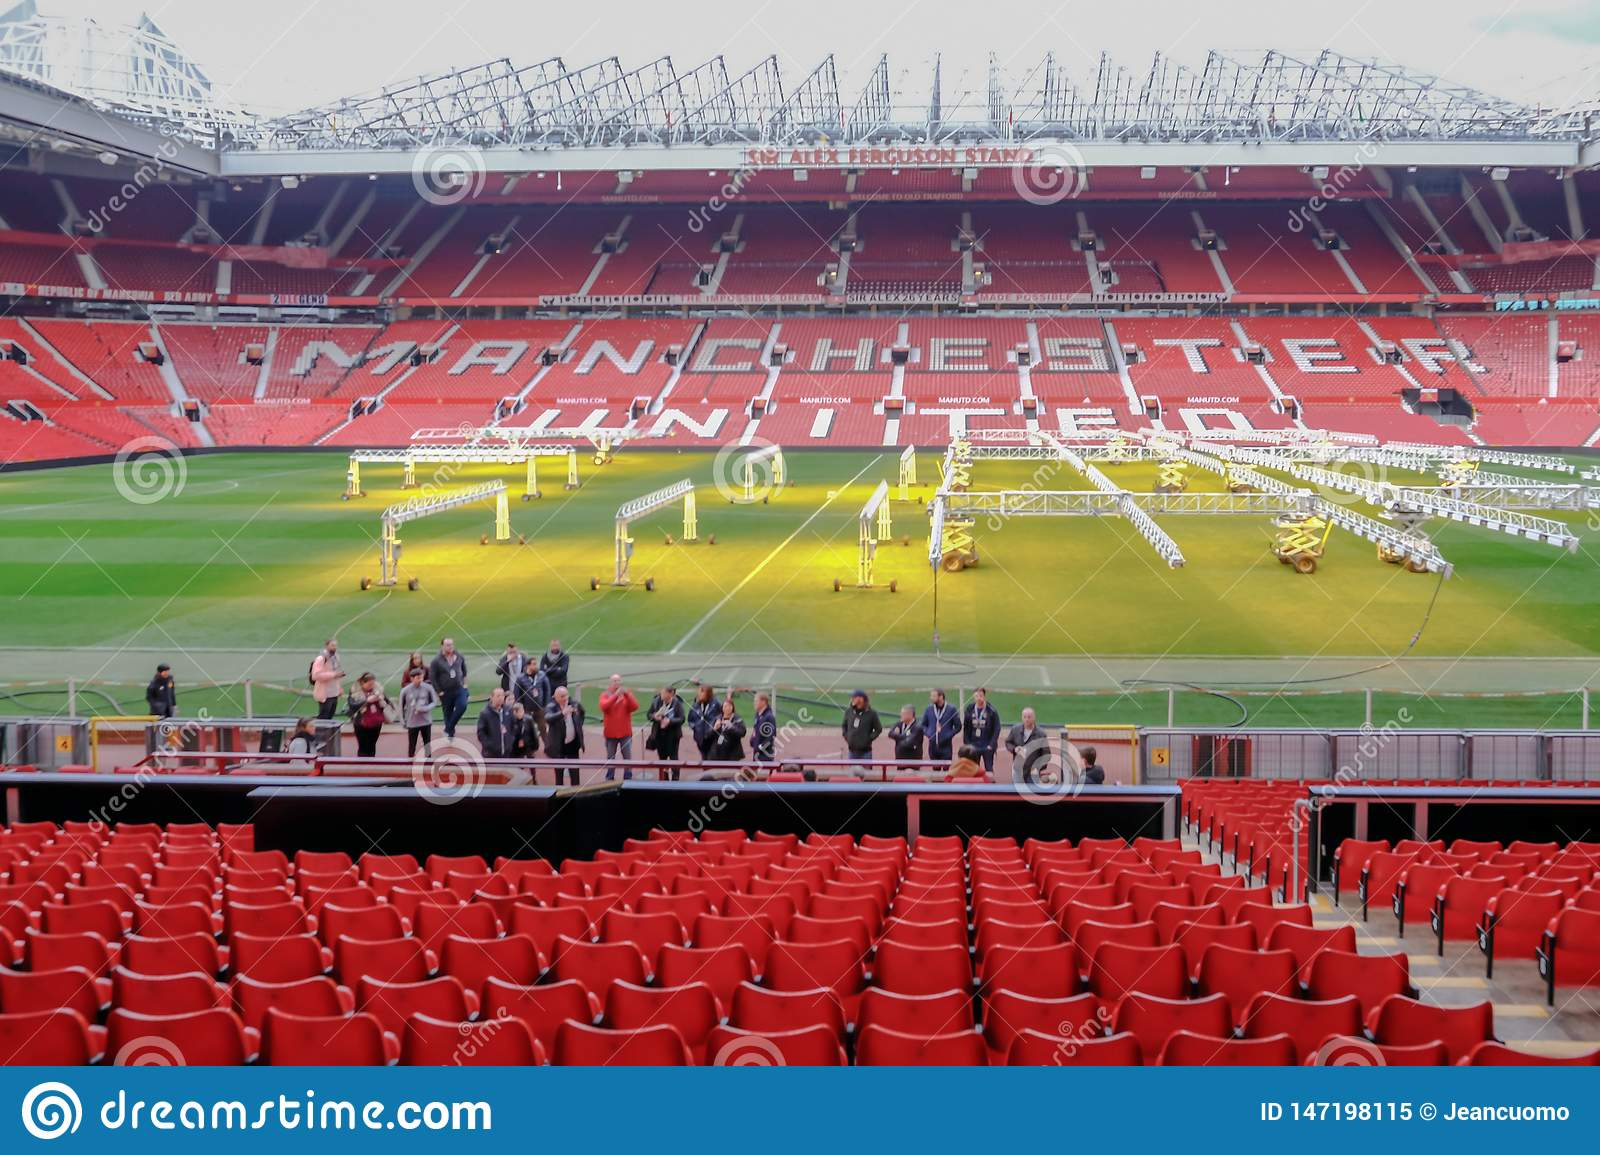 Manchester United S Old Trafford Stadium Seating Is Empty And The Pitch Is Having Light Treatment To Help Maintain The Grass Editorial Image Image Of Interior Editorial 147198115